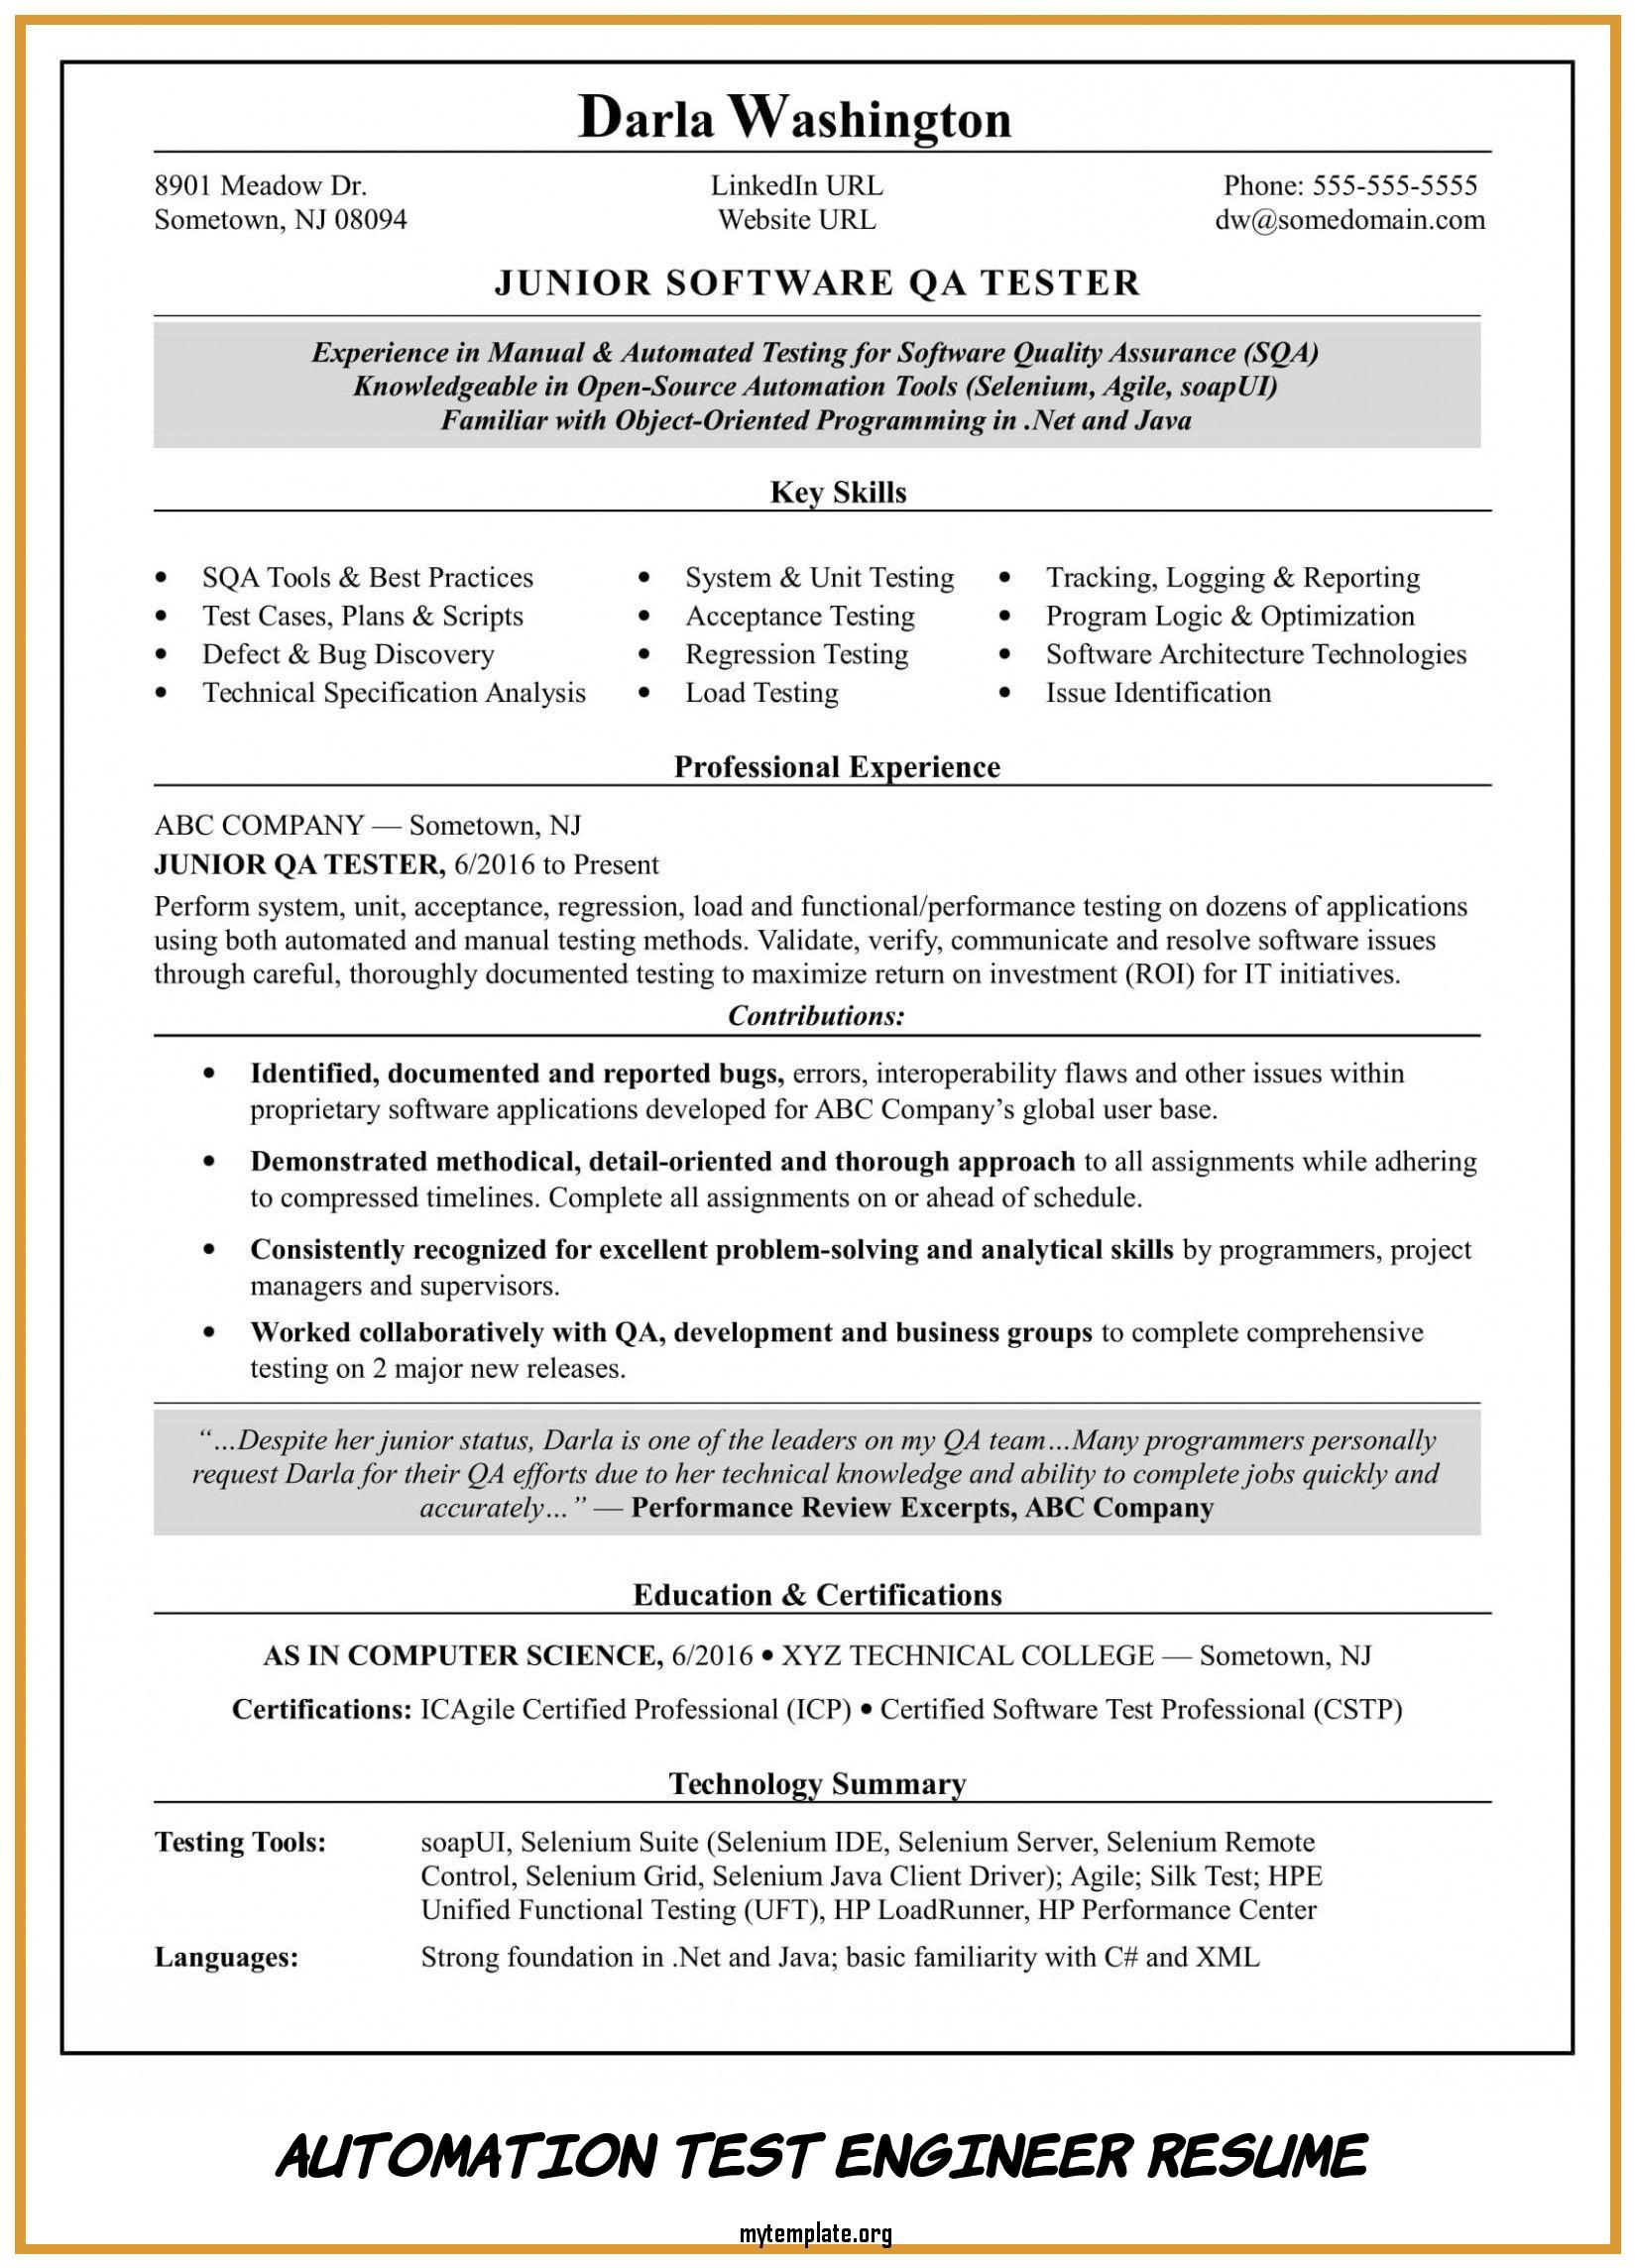 automation test engineer resume free templates tester of take look at pin elegant cover Resume Automation Tester Resume